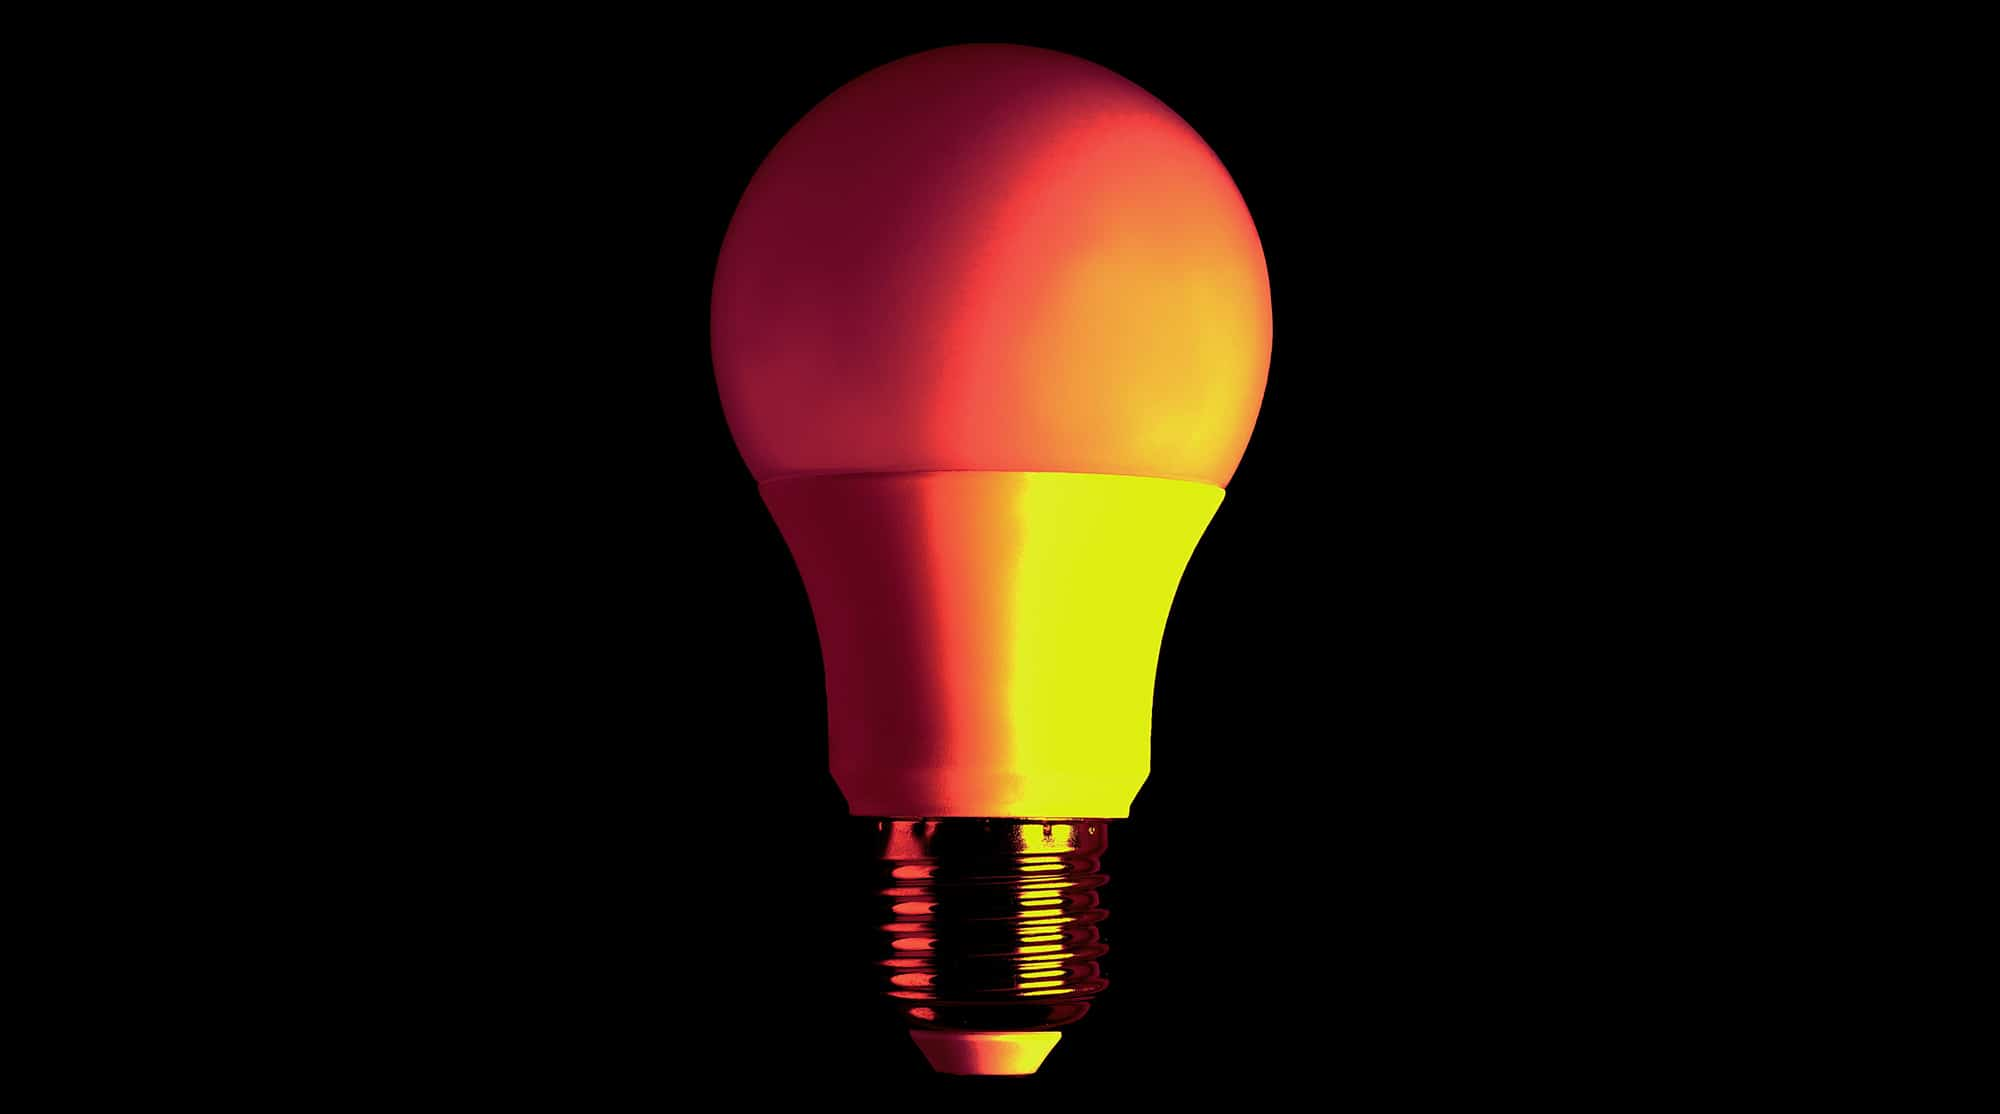 An image of an energy efficient LED lightbulb